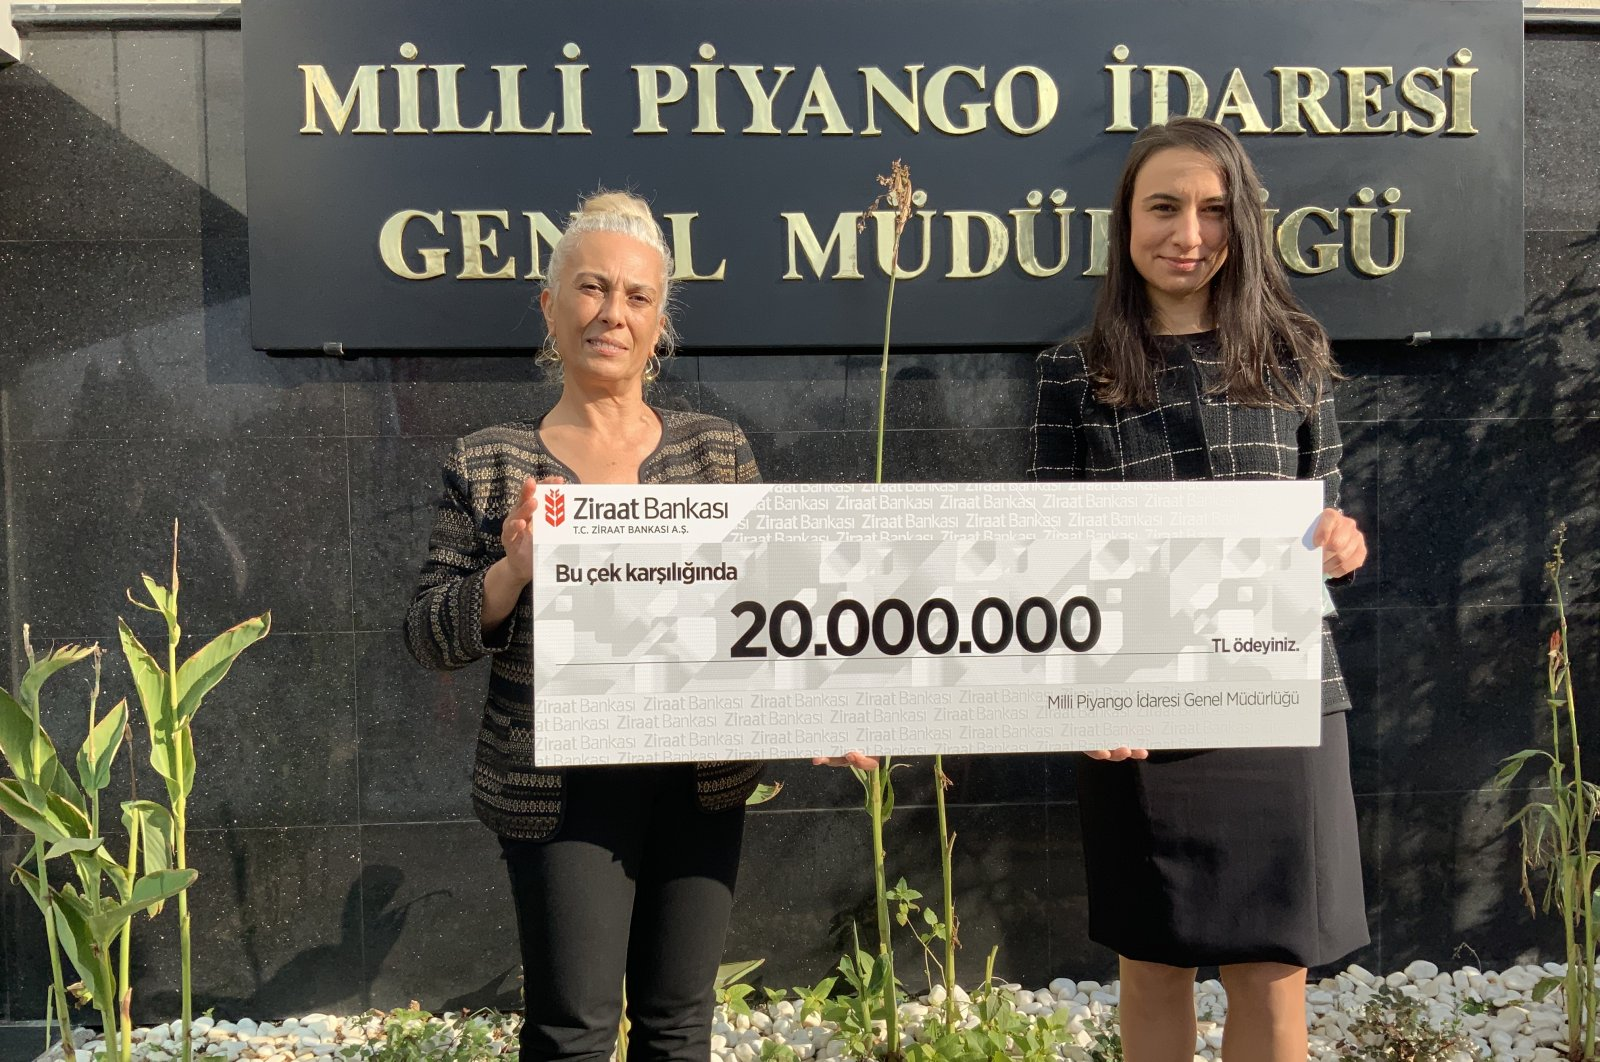 A National Lottery representative and a Ziraat Bank employee who received the prize on behalf of an anonymous winner, pose with a symbolic check for the prize, in the capital Ankara, Turkey, Dec. 3, 2020. (AA PHOTO)